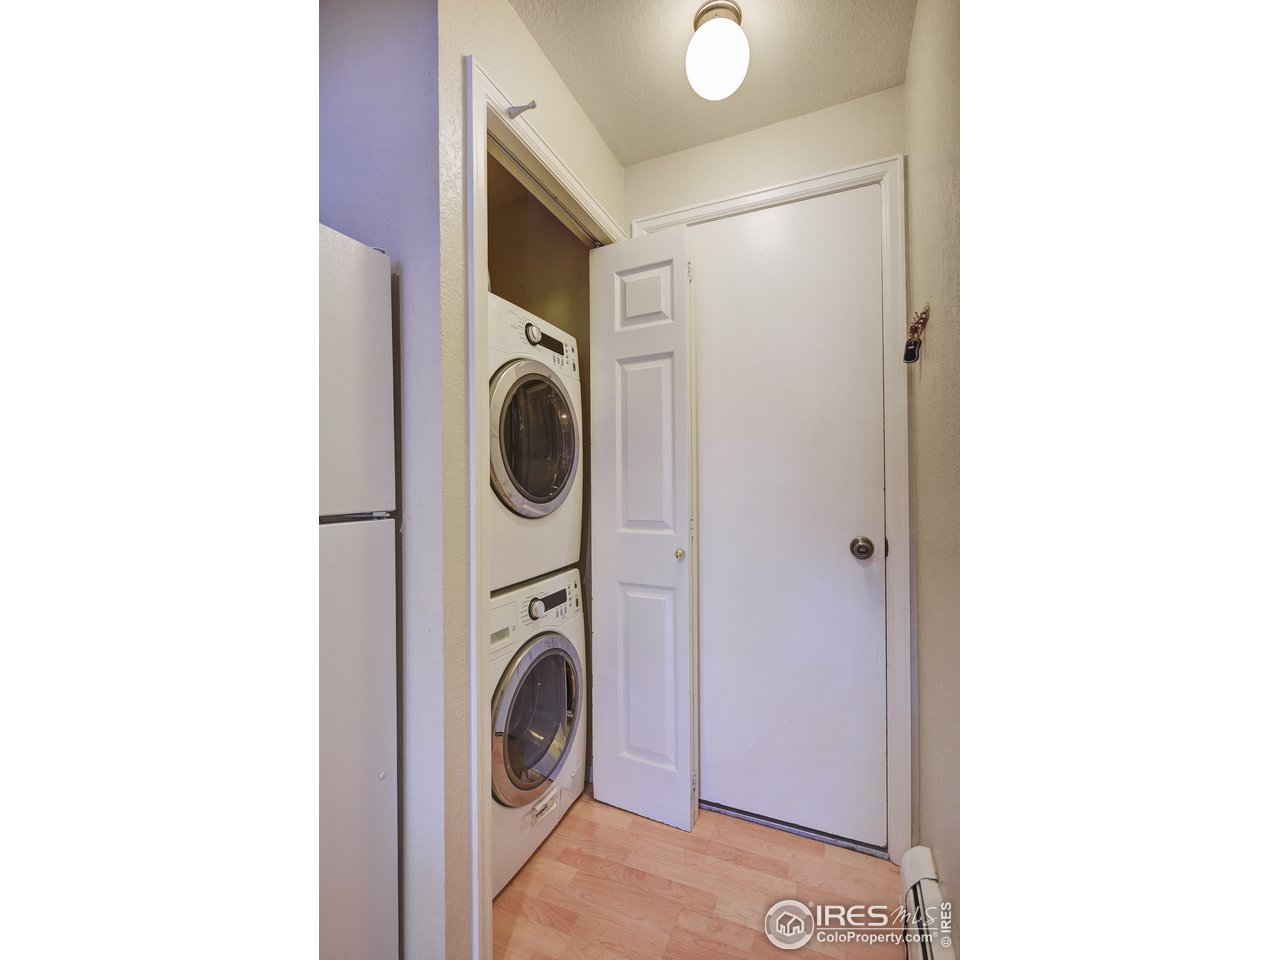 Washer/Dryer and Garage Entrance